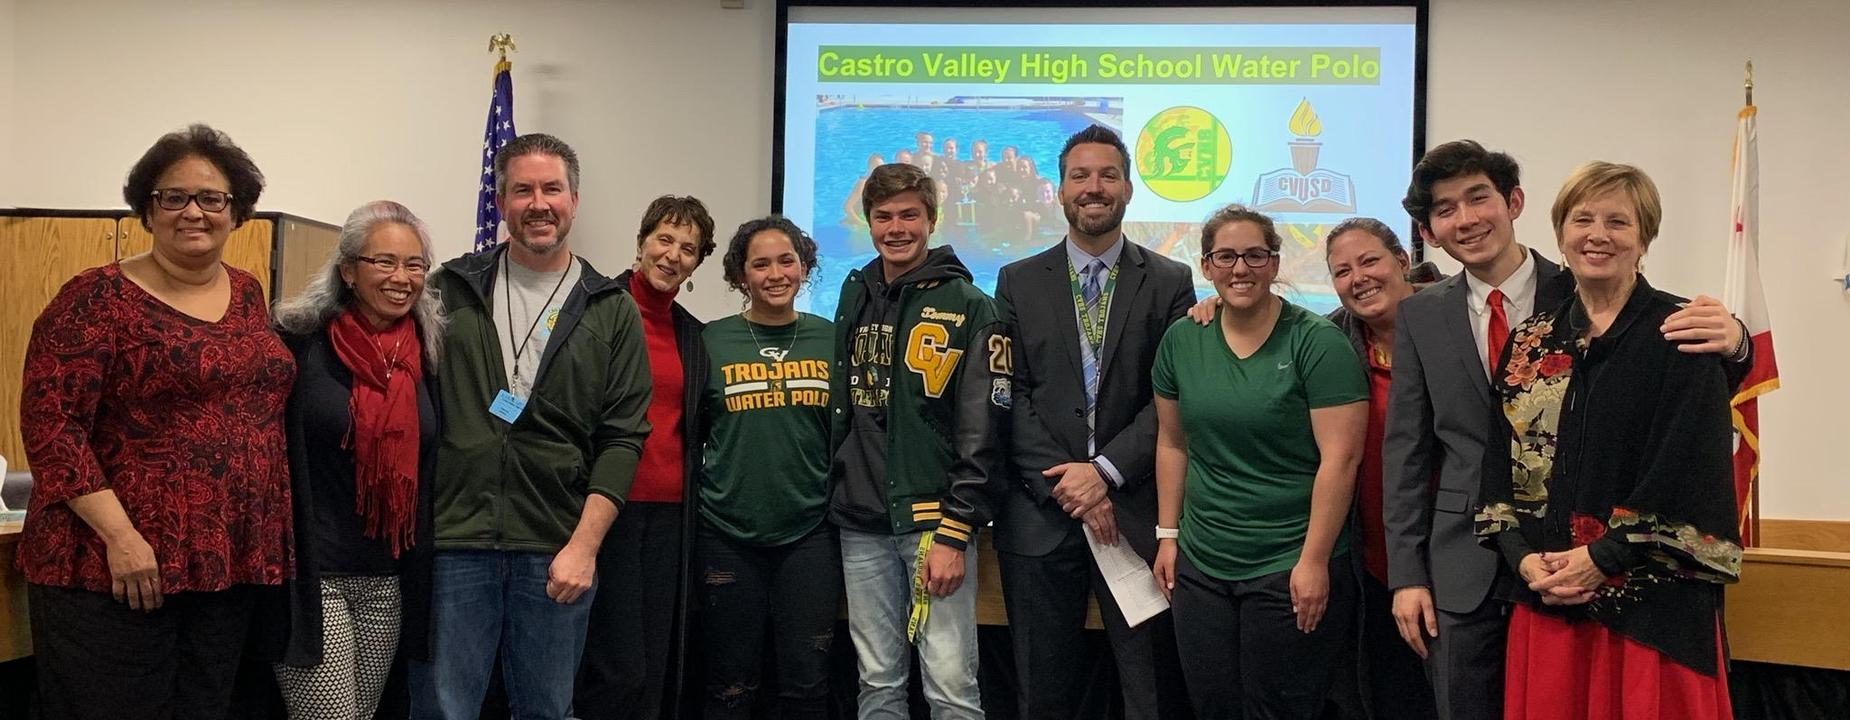 Board adopts water polo